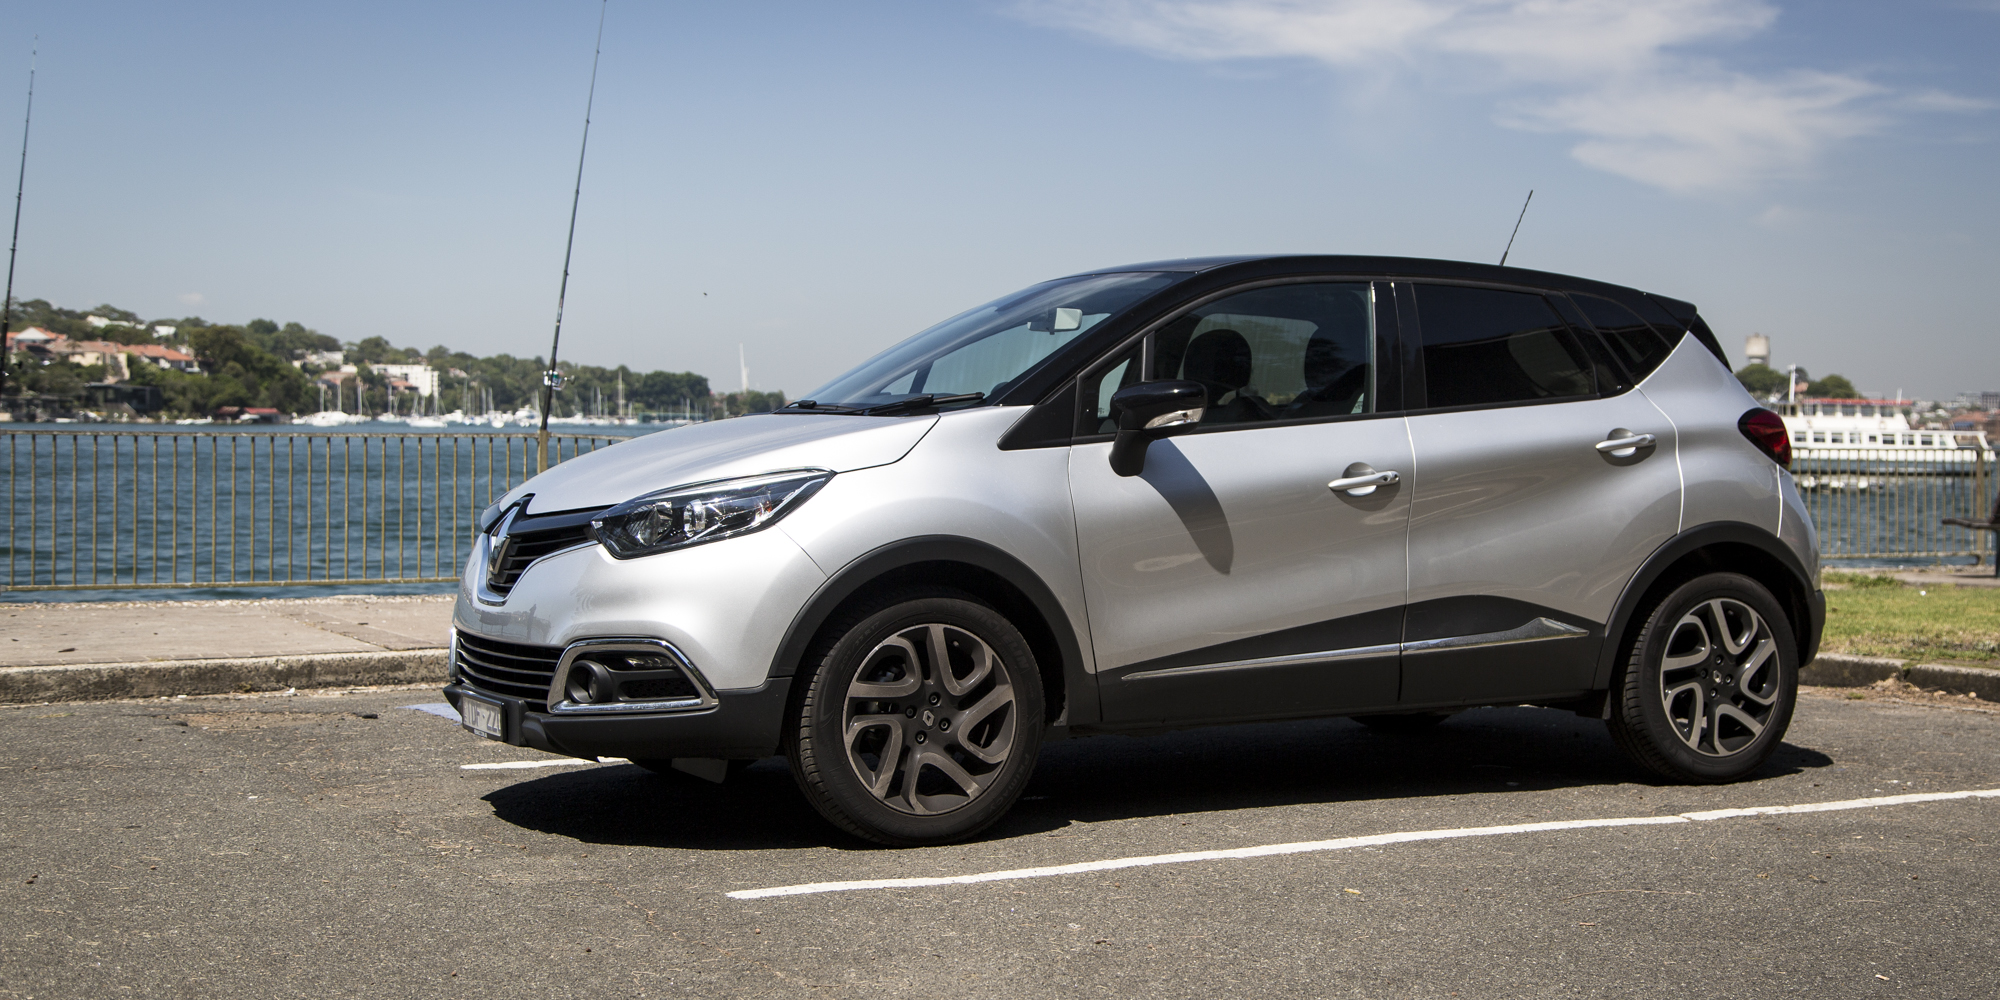 renault captur review long term report two caradvice. Black Bedroom Furniture Sets. Home Design Ideas